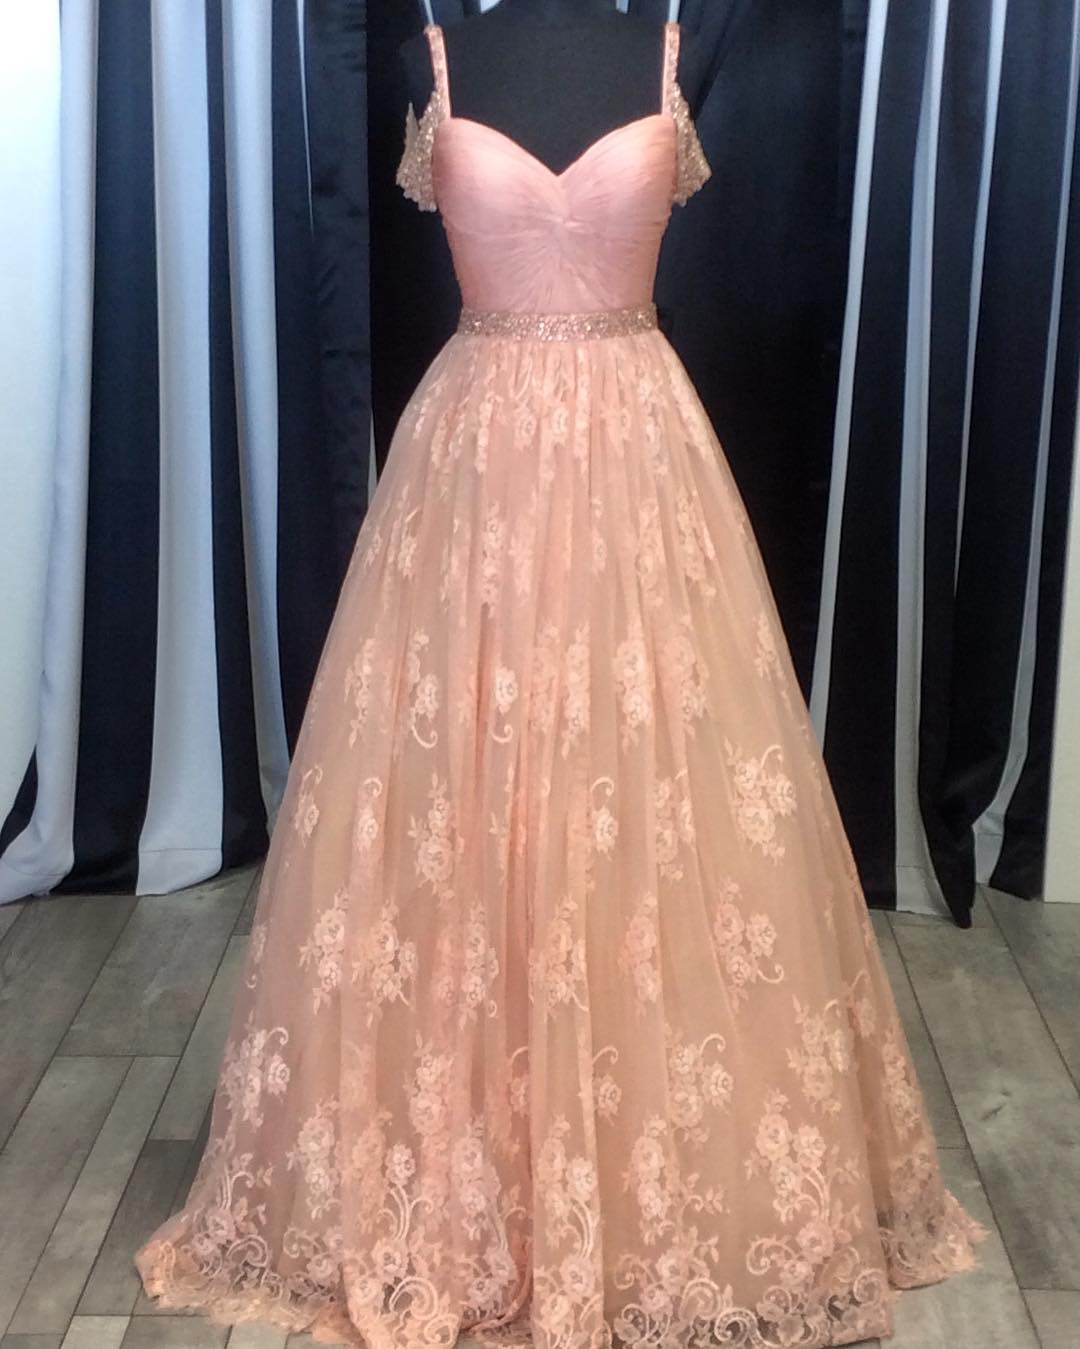 Bush Pink Lace Ball Gowns Prom Dress 2017, Lace Prom Dress, Vestido ...